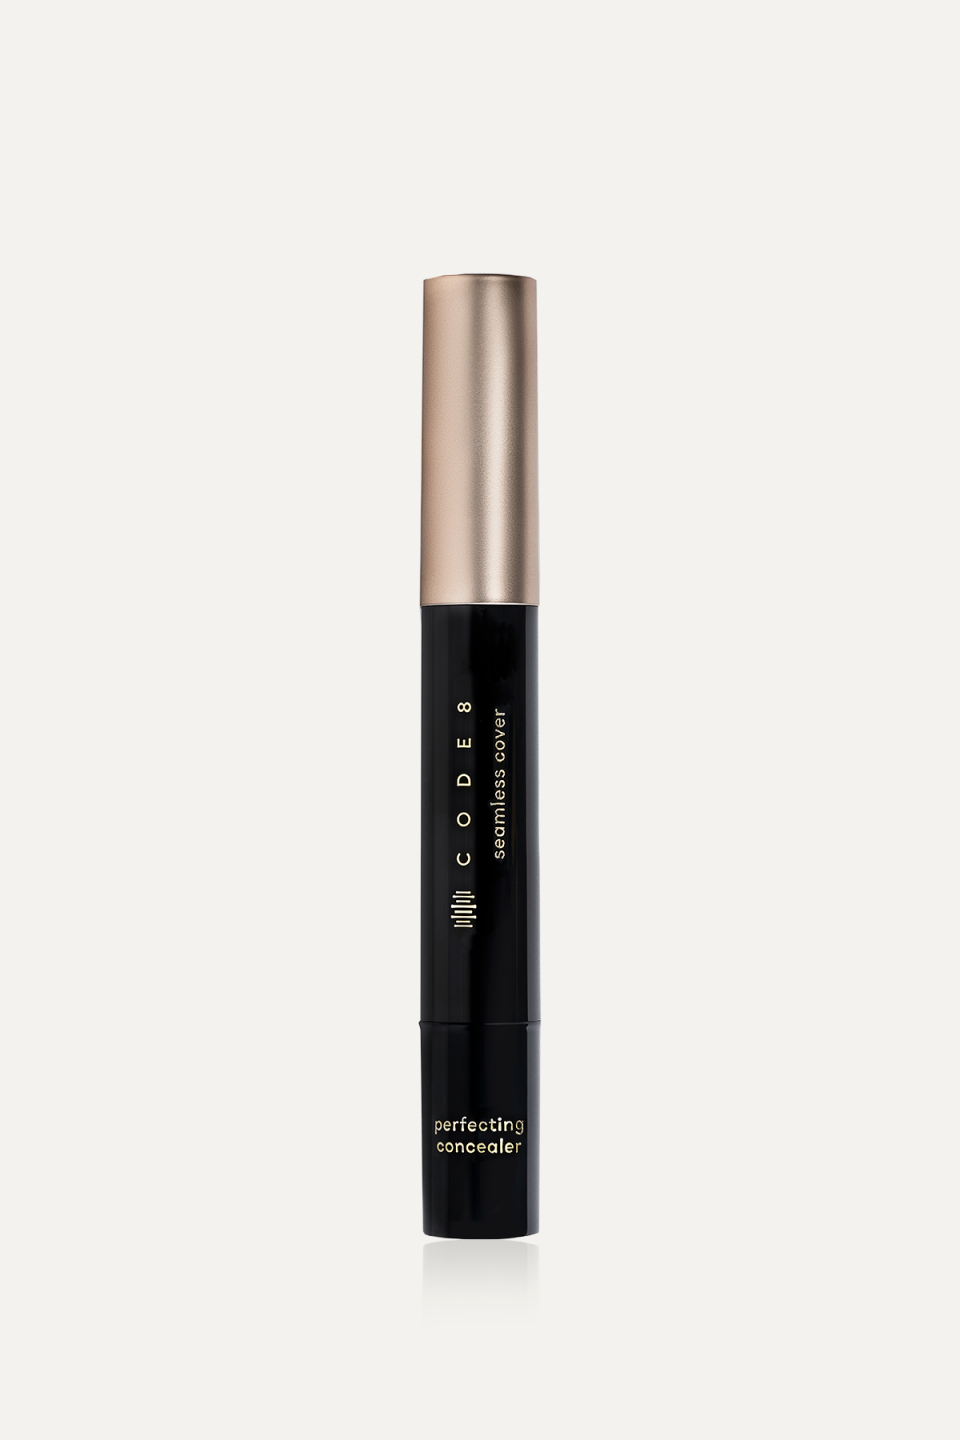 Code 8 Seamless Cover Liquid Concealer Shade nc15